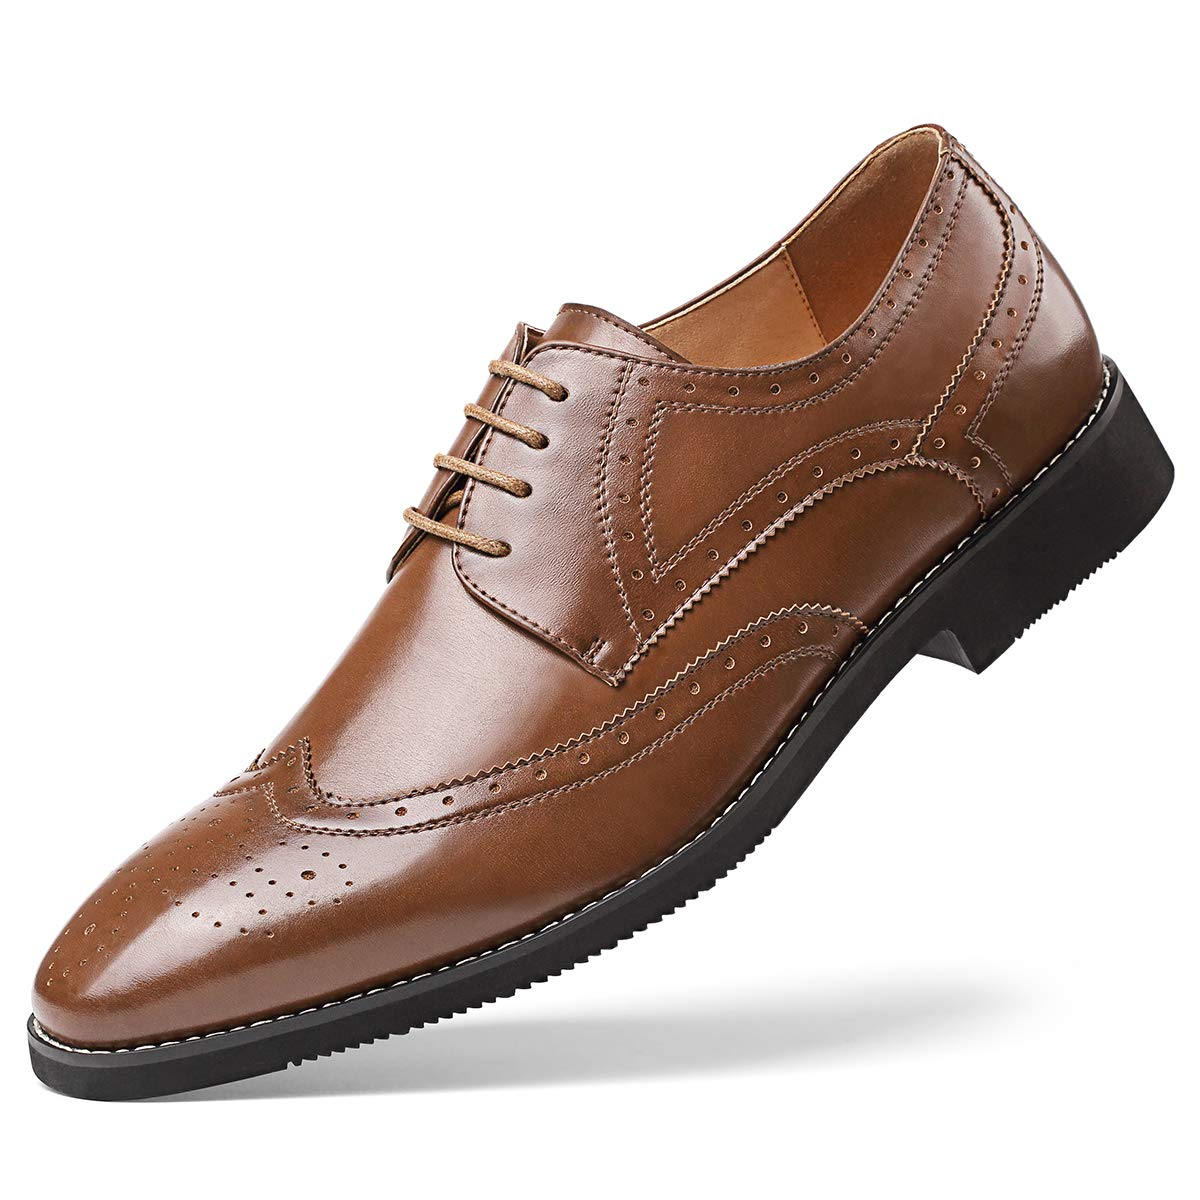 Amazoncom Mens Leather Oxford Dress Shoes Formal Lace Up Modern